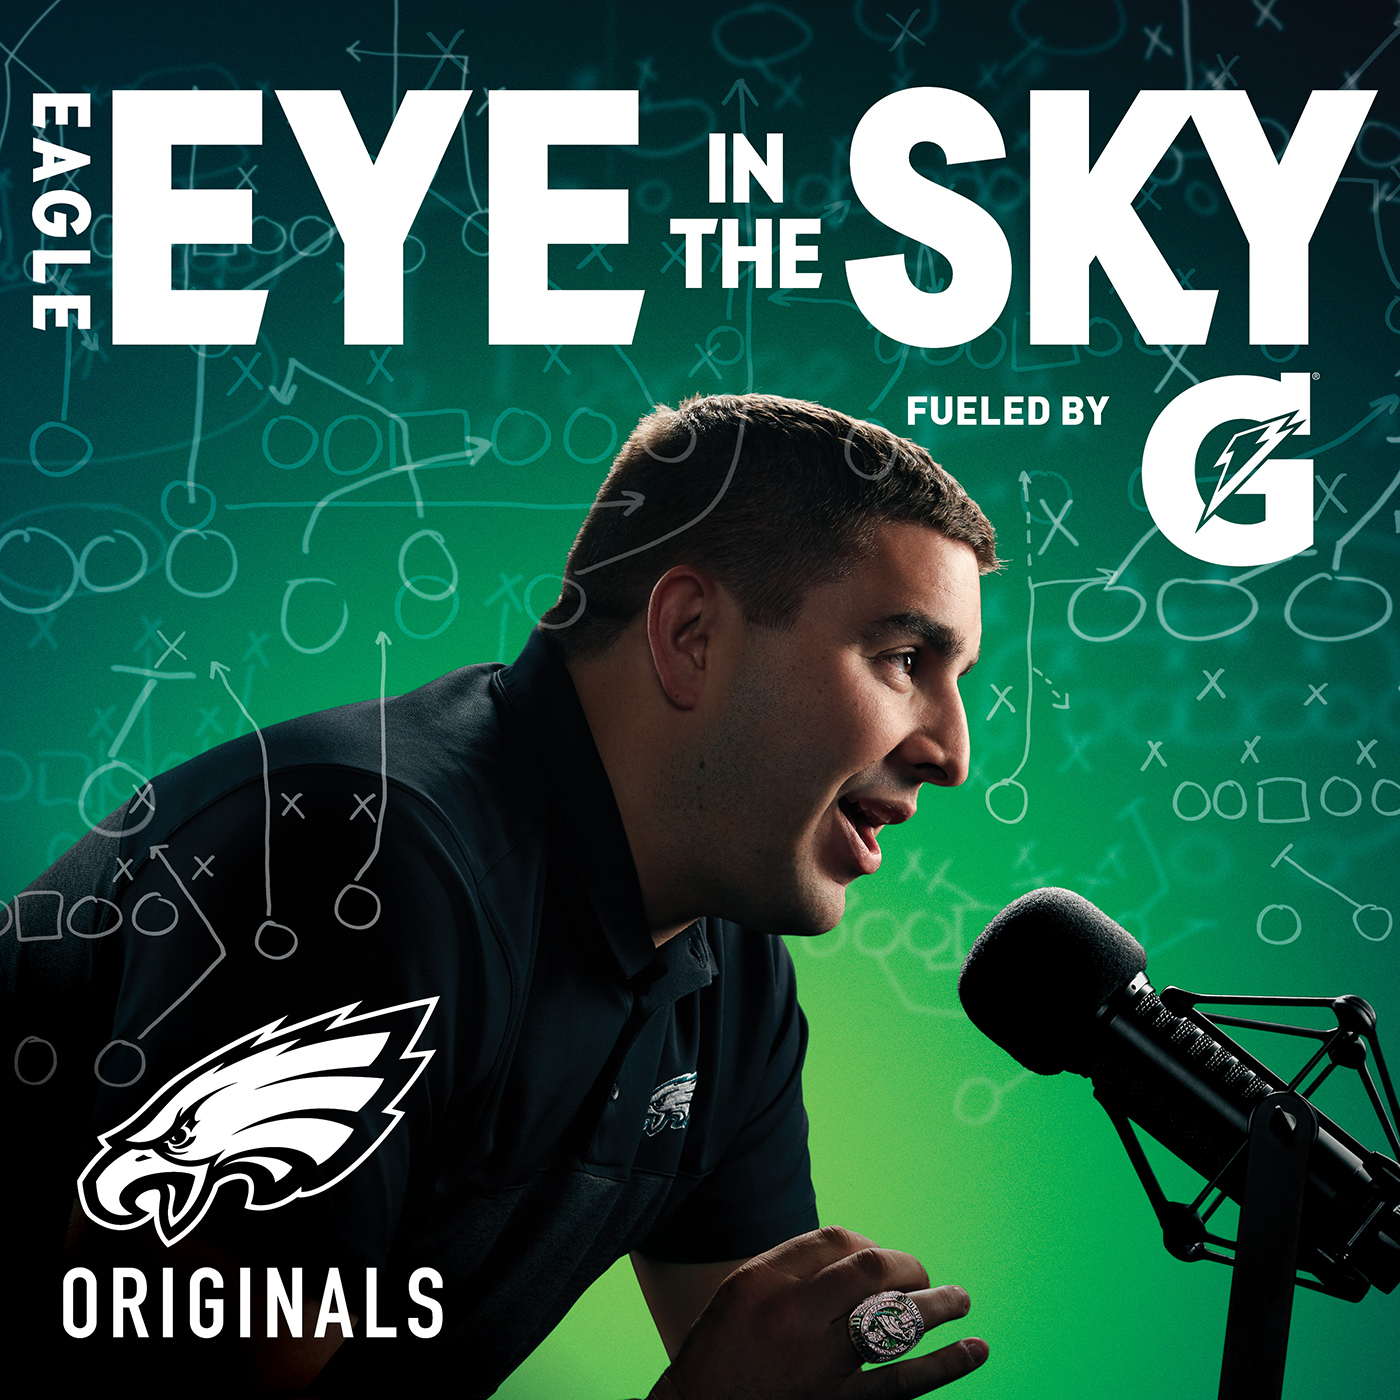 photo relating to Philadelphia Eagles Printable Schedule identified as Eagle Eye Inside of The Sky Podcast Hear as a result of Scher for Podcasts